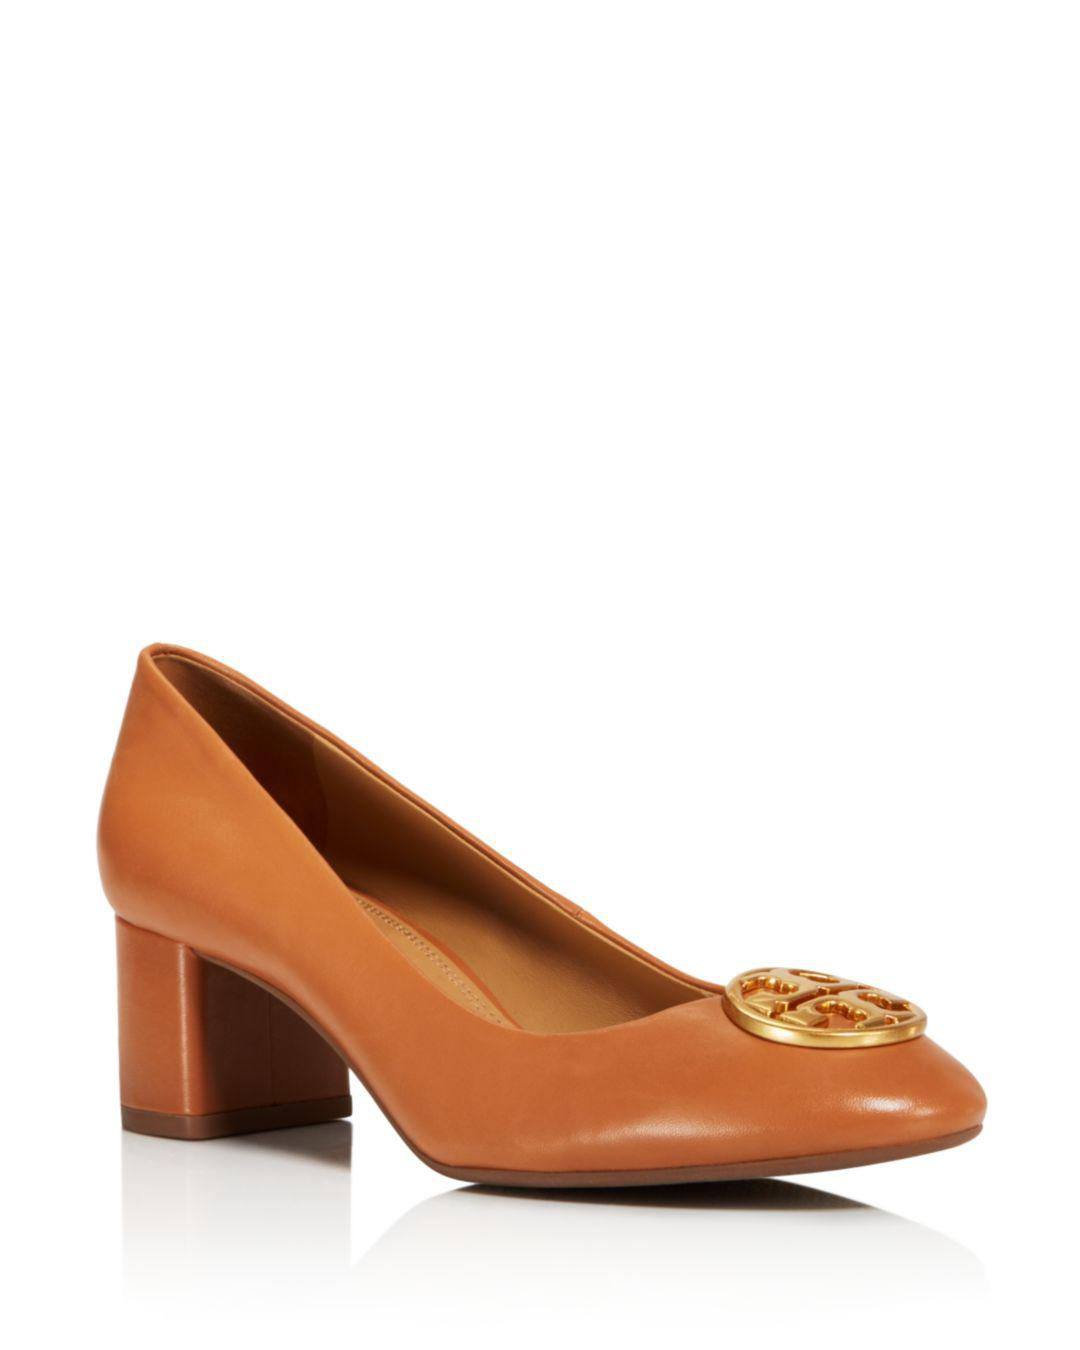 2d301652d85cf Lyst - Tory Burch Chelsea Pump in Brown - Save 35.25179856115108%